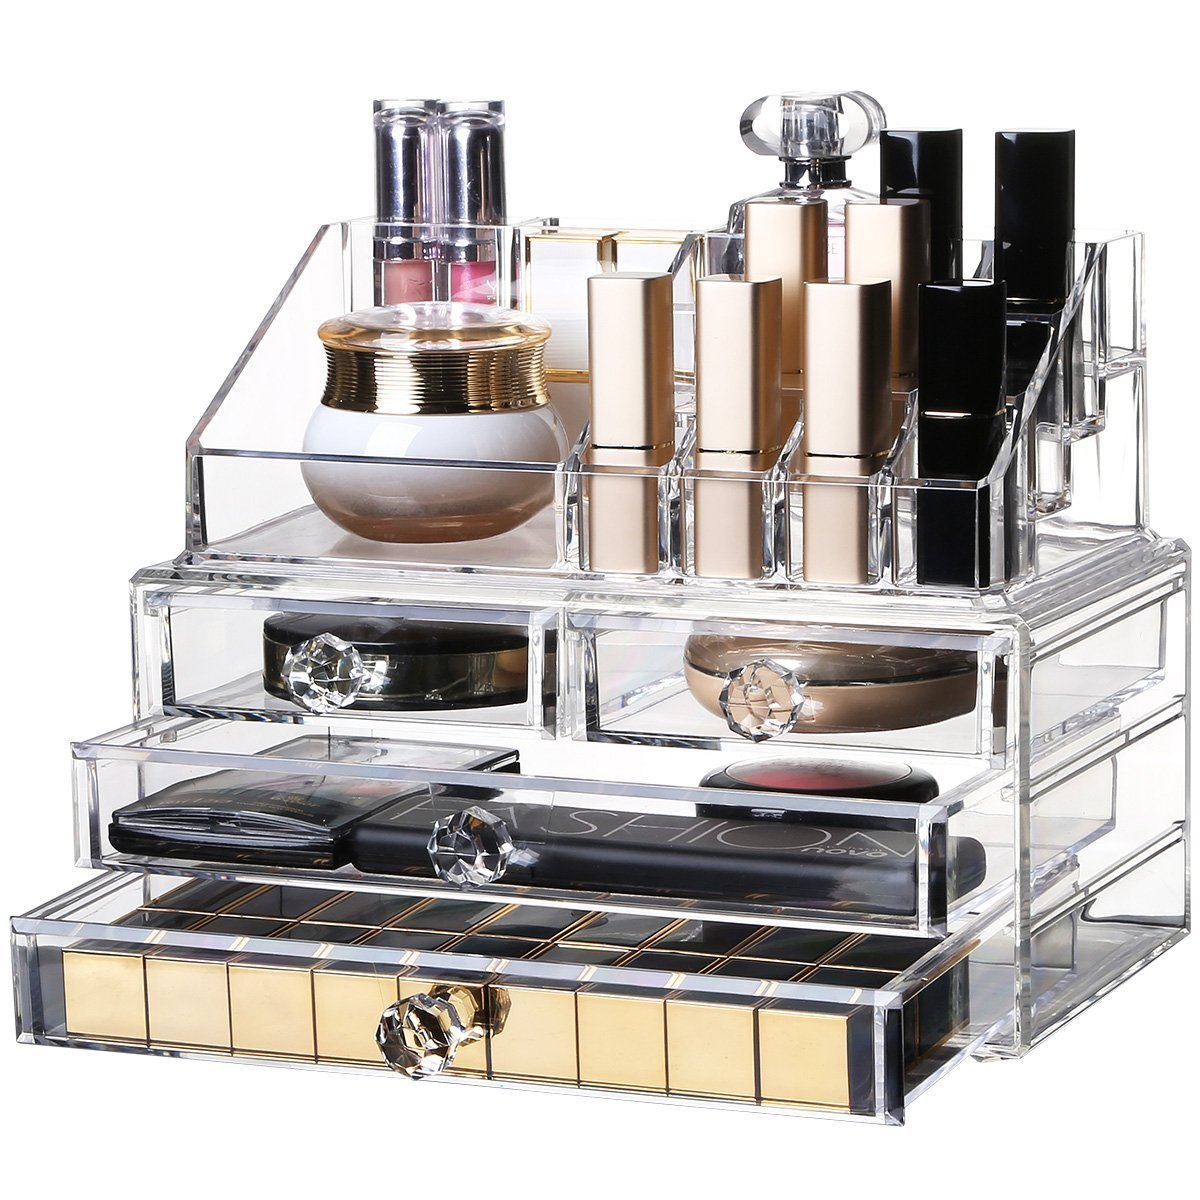 YOLER Makeup Organizer Acrylic Cosmetic Organizer Jewelry Storage Counter Storage Display Case, 2 pieces set: 4 drawers with top section (Classical)